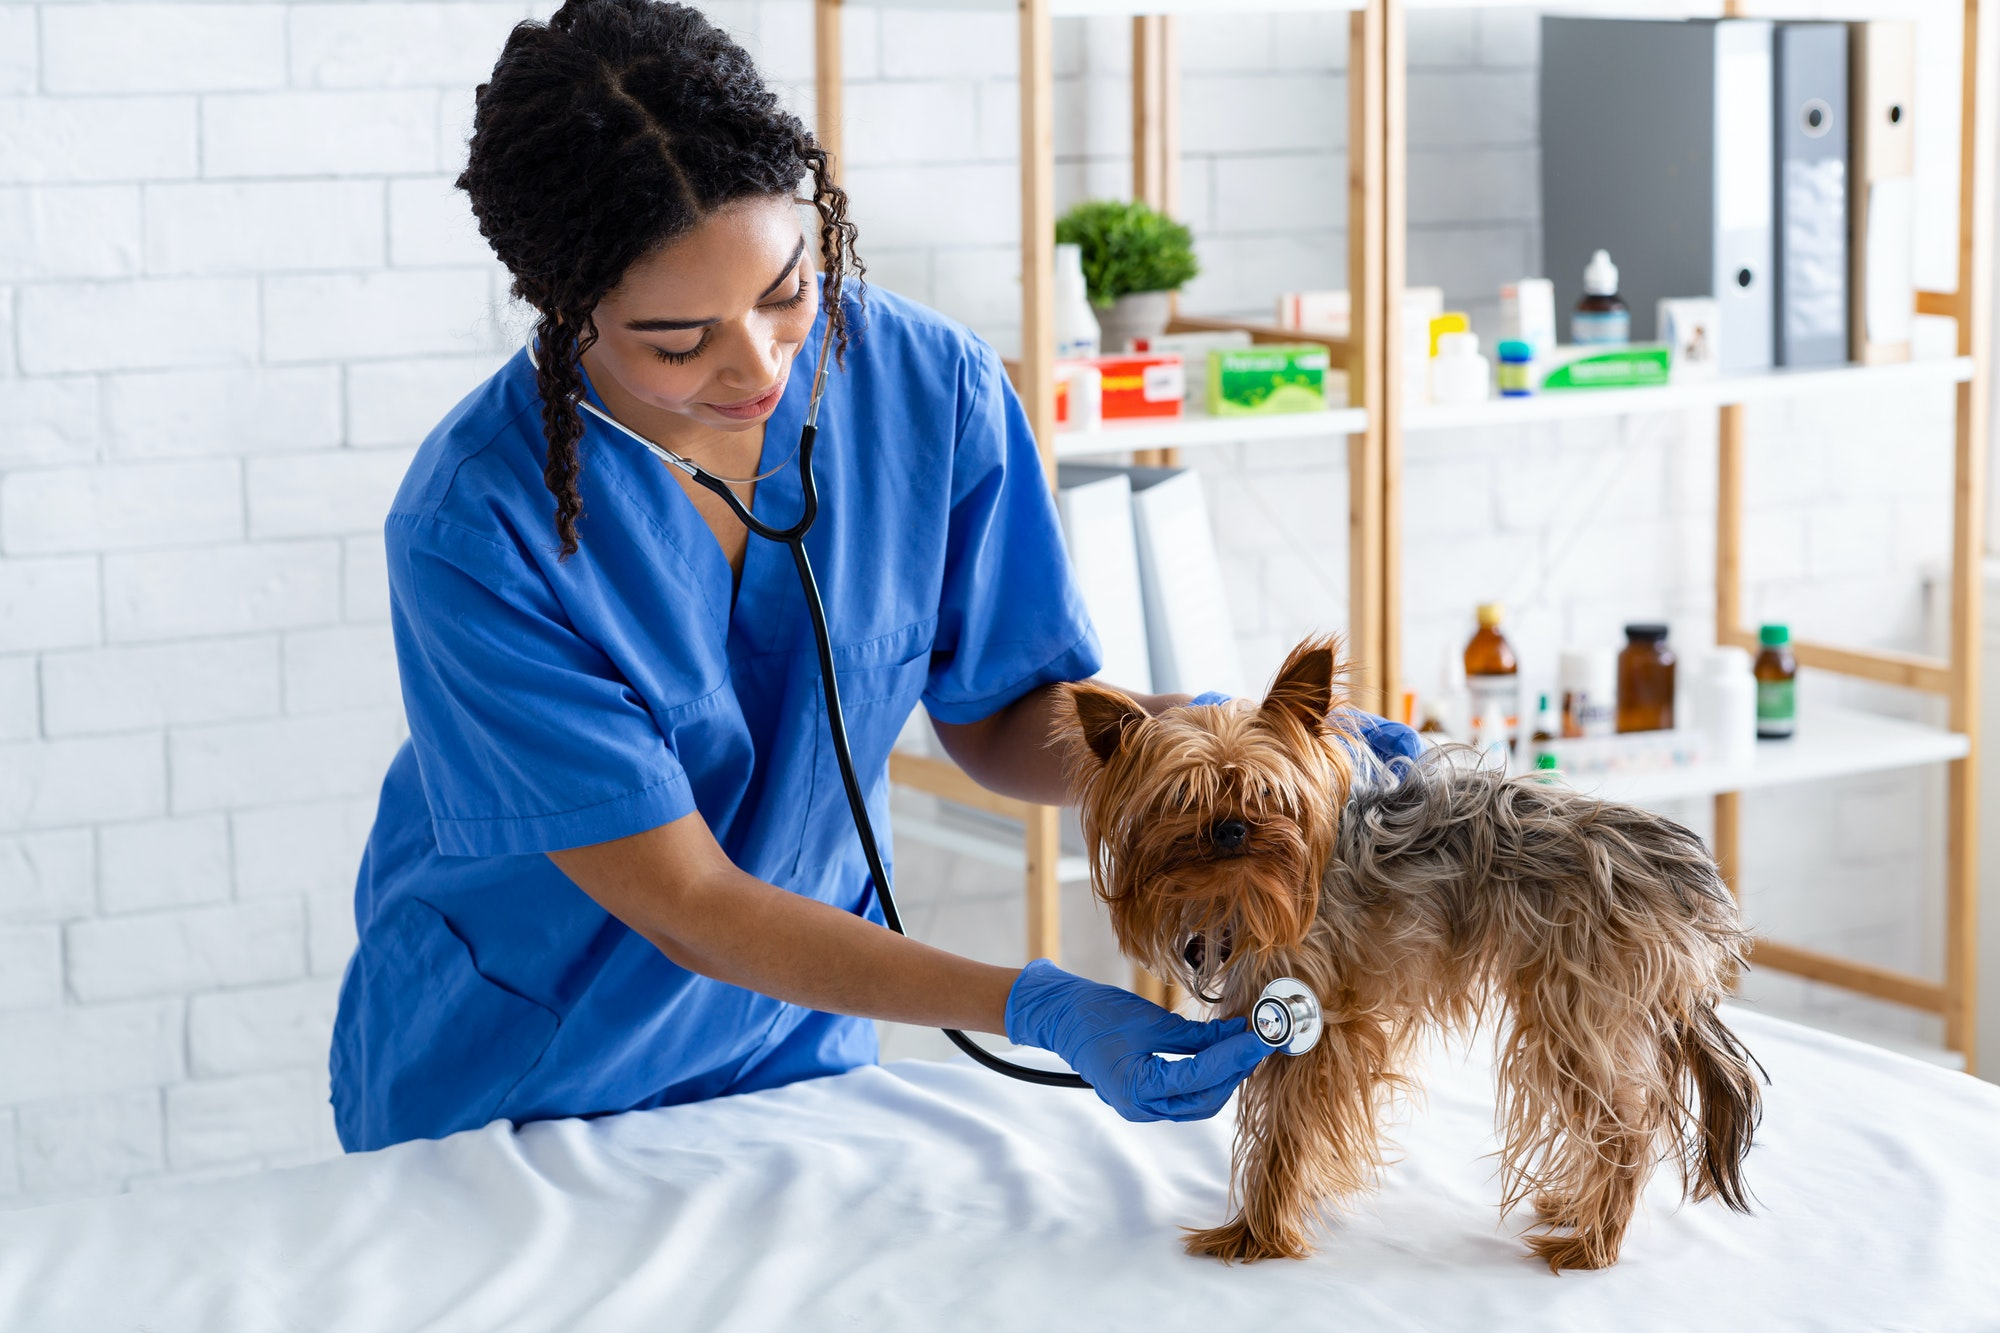 Animal cardiology. African American veterinarian doc checking little dog's heart rate with